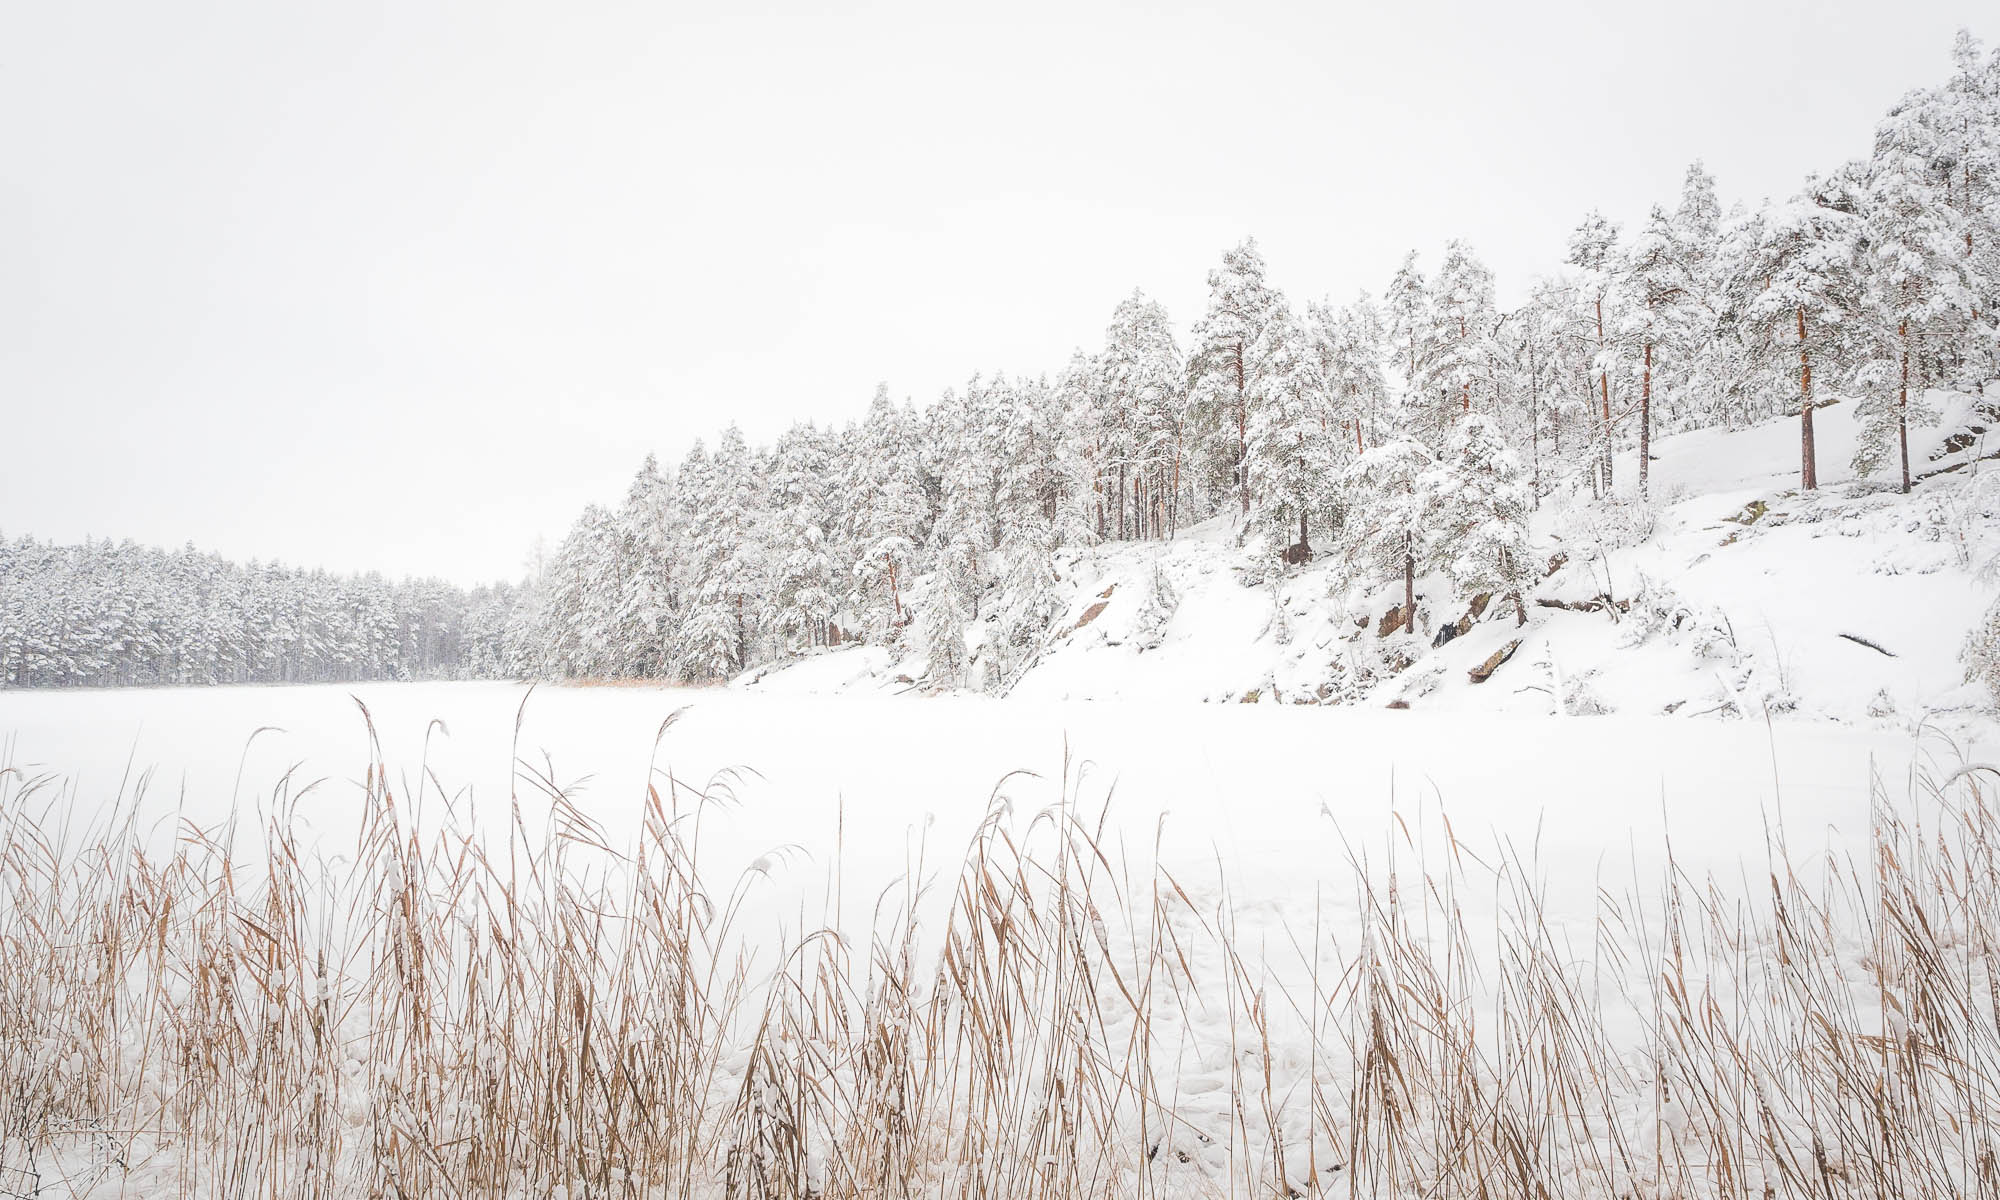 Nuuksio National Park in winter. Christmas week and the forest is all covered in snow, perfect! Finnish nature near Helsinki, Finland.